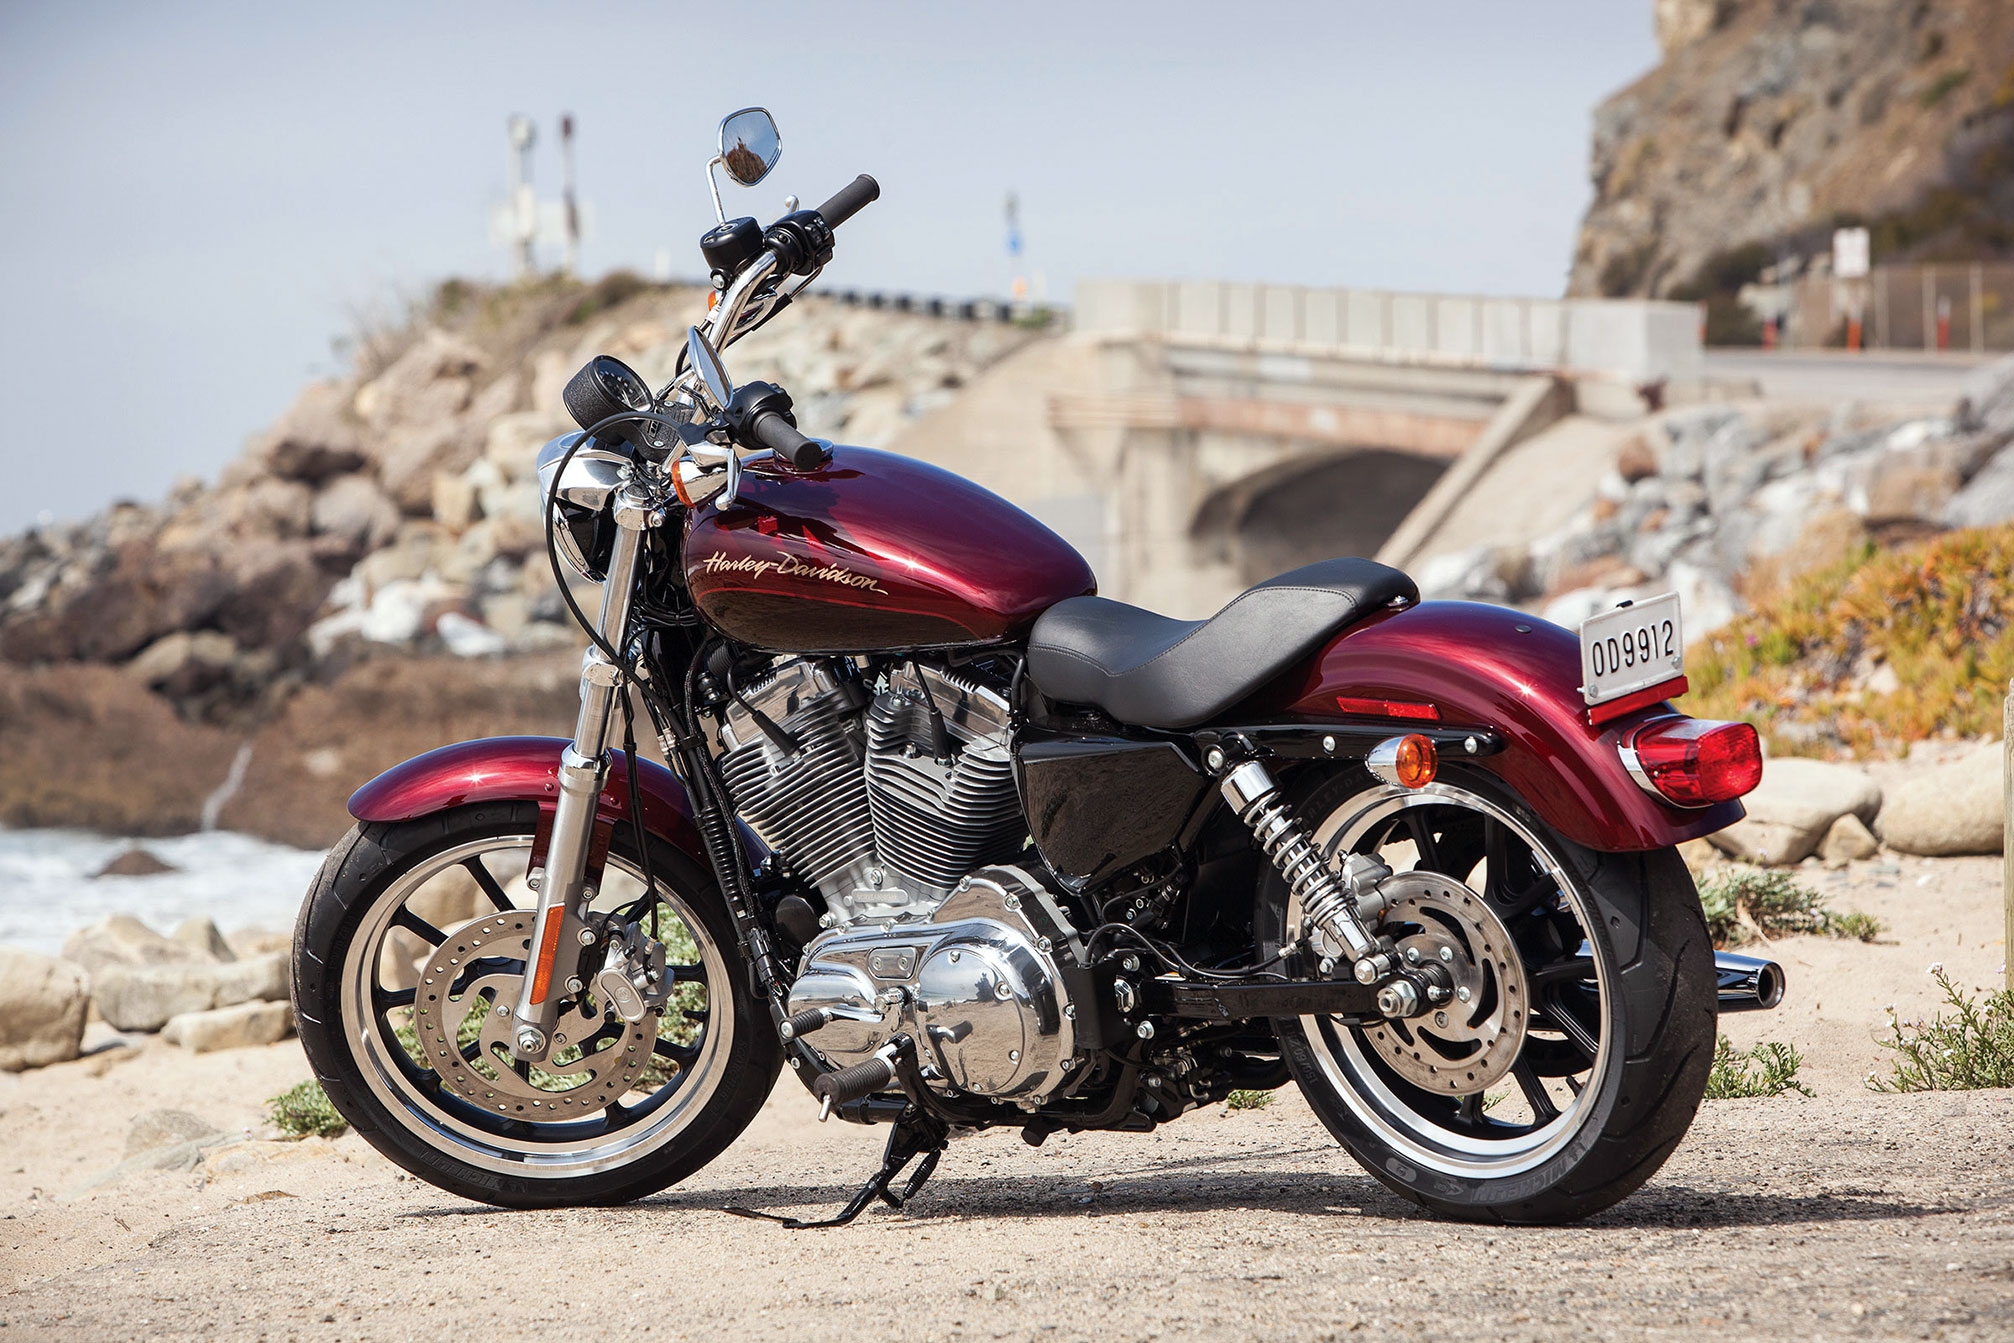 2014 harley davidson xl883l superlow review. Black Bedroom Furniture Sets. Home Design Ideas